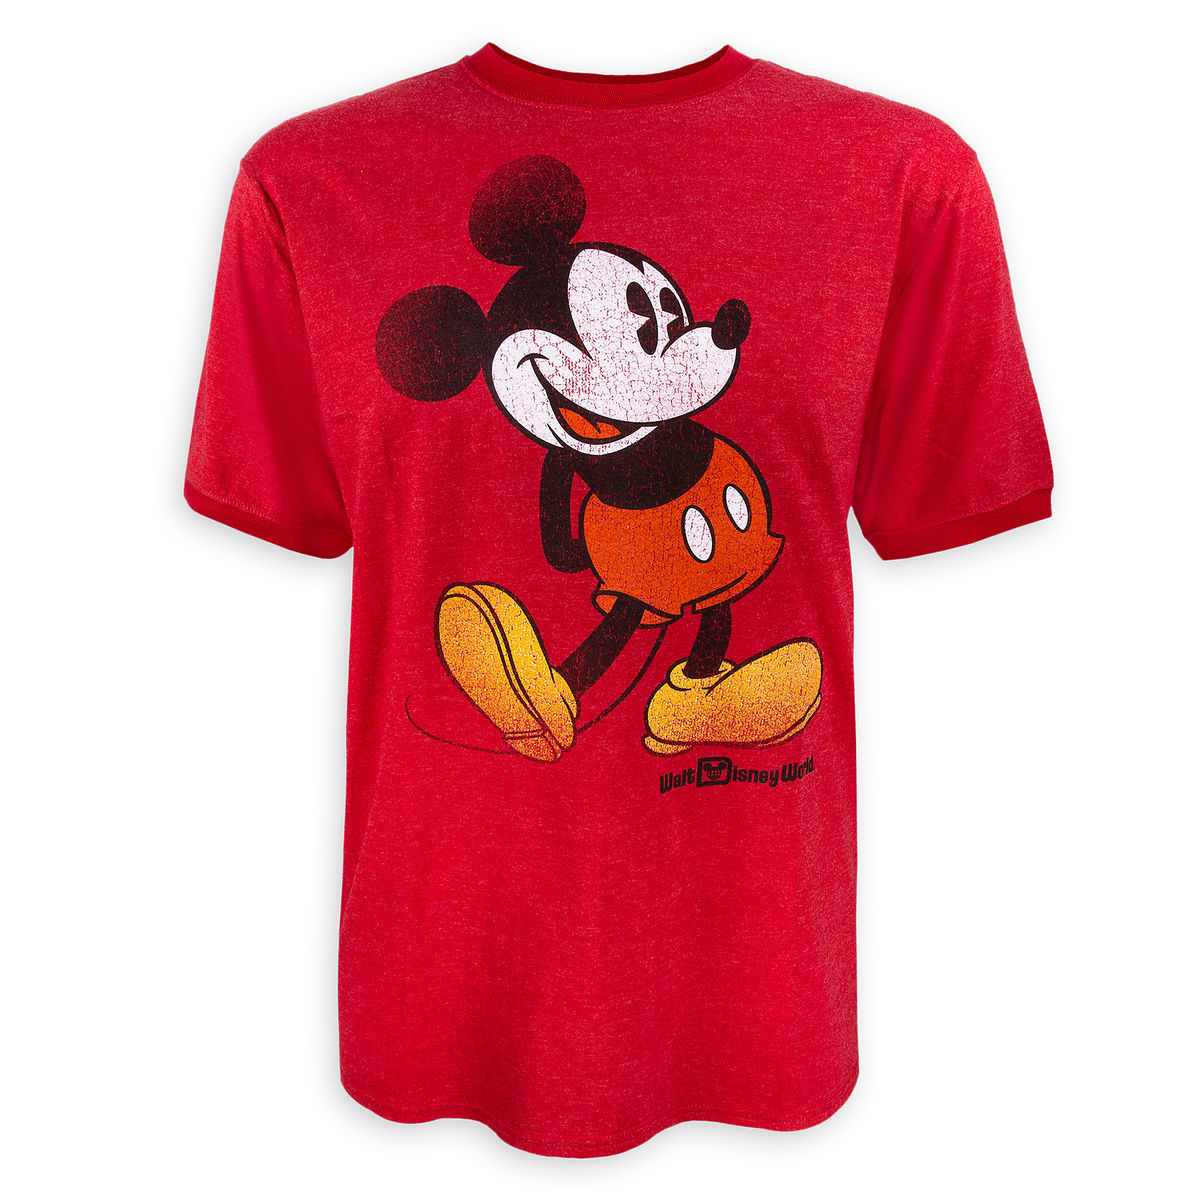 6014939f2 Disney T-Shirt for Men - Mickey Mouse - Walt Disney World - Red